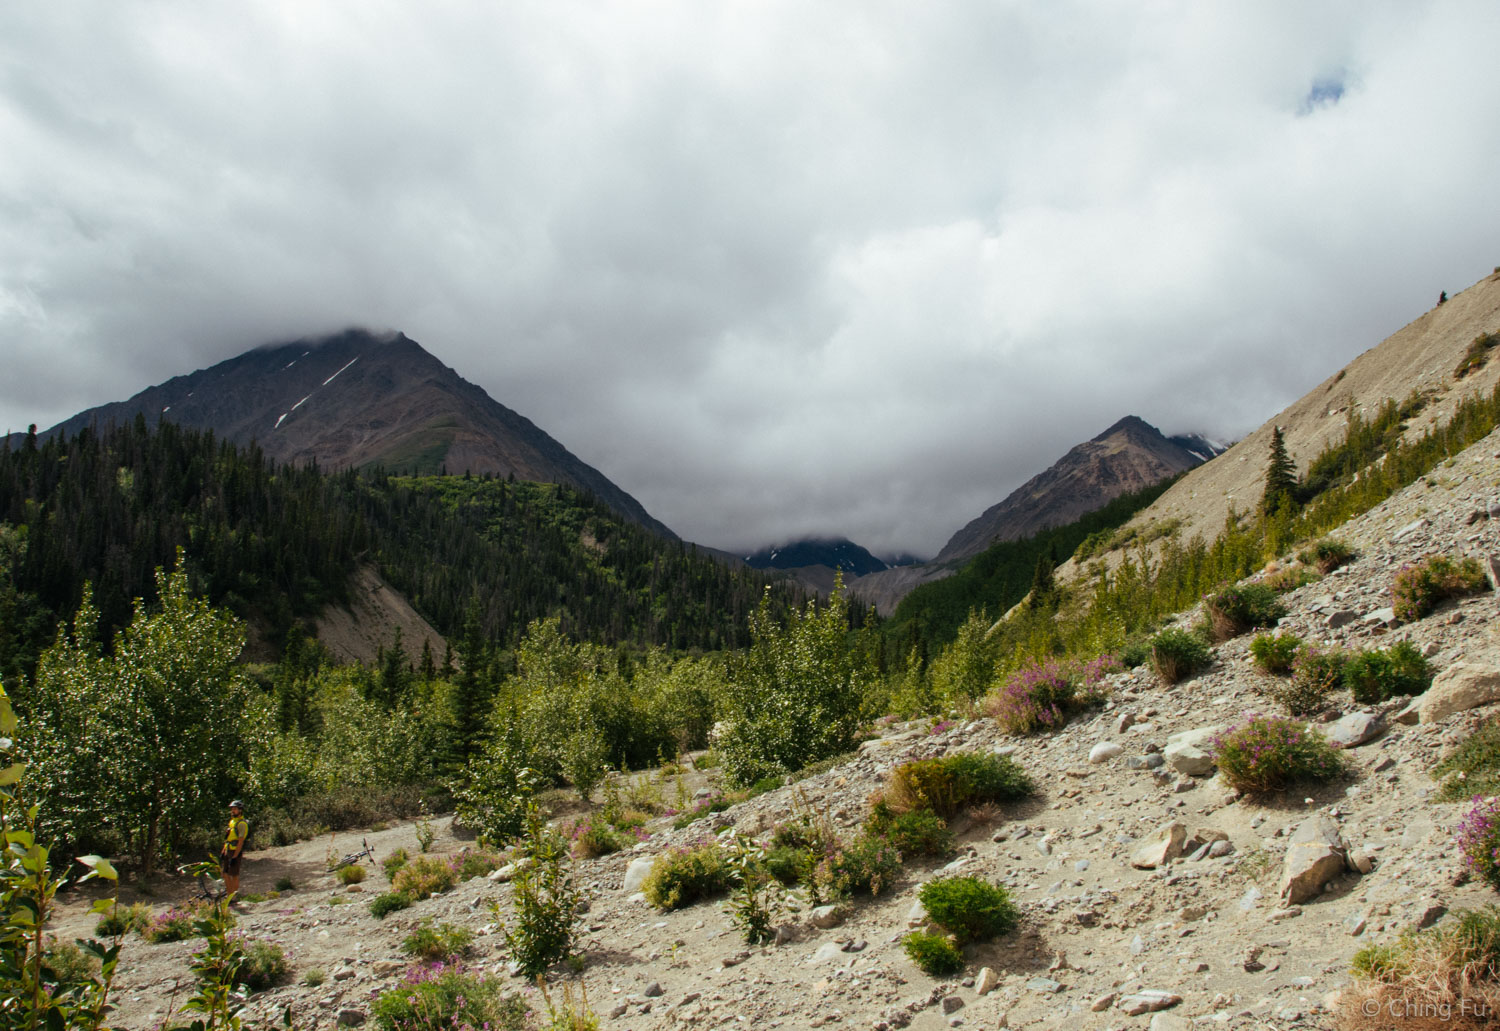 Those mountains are located within Kluane National Park.